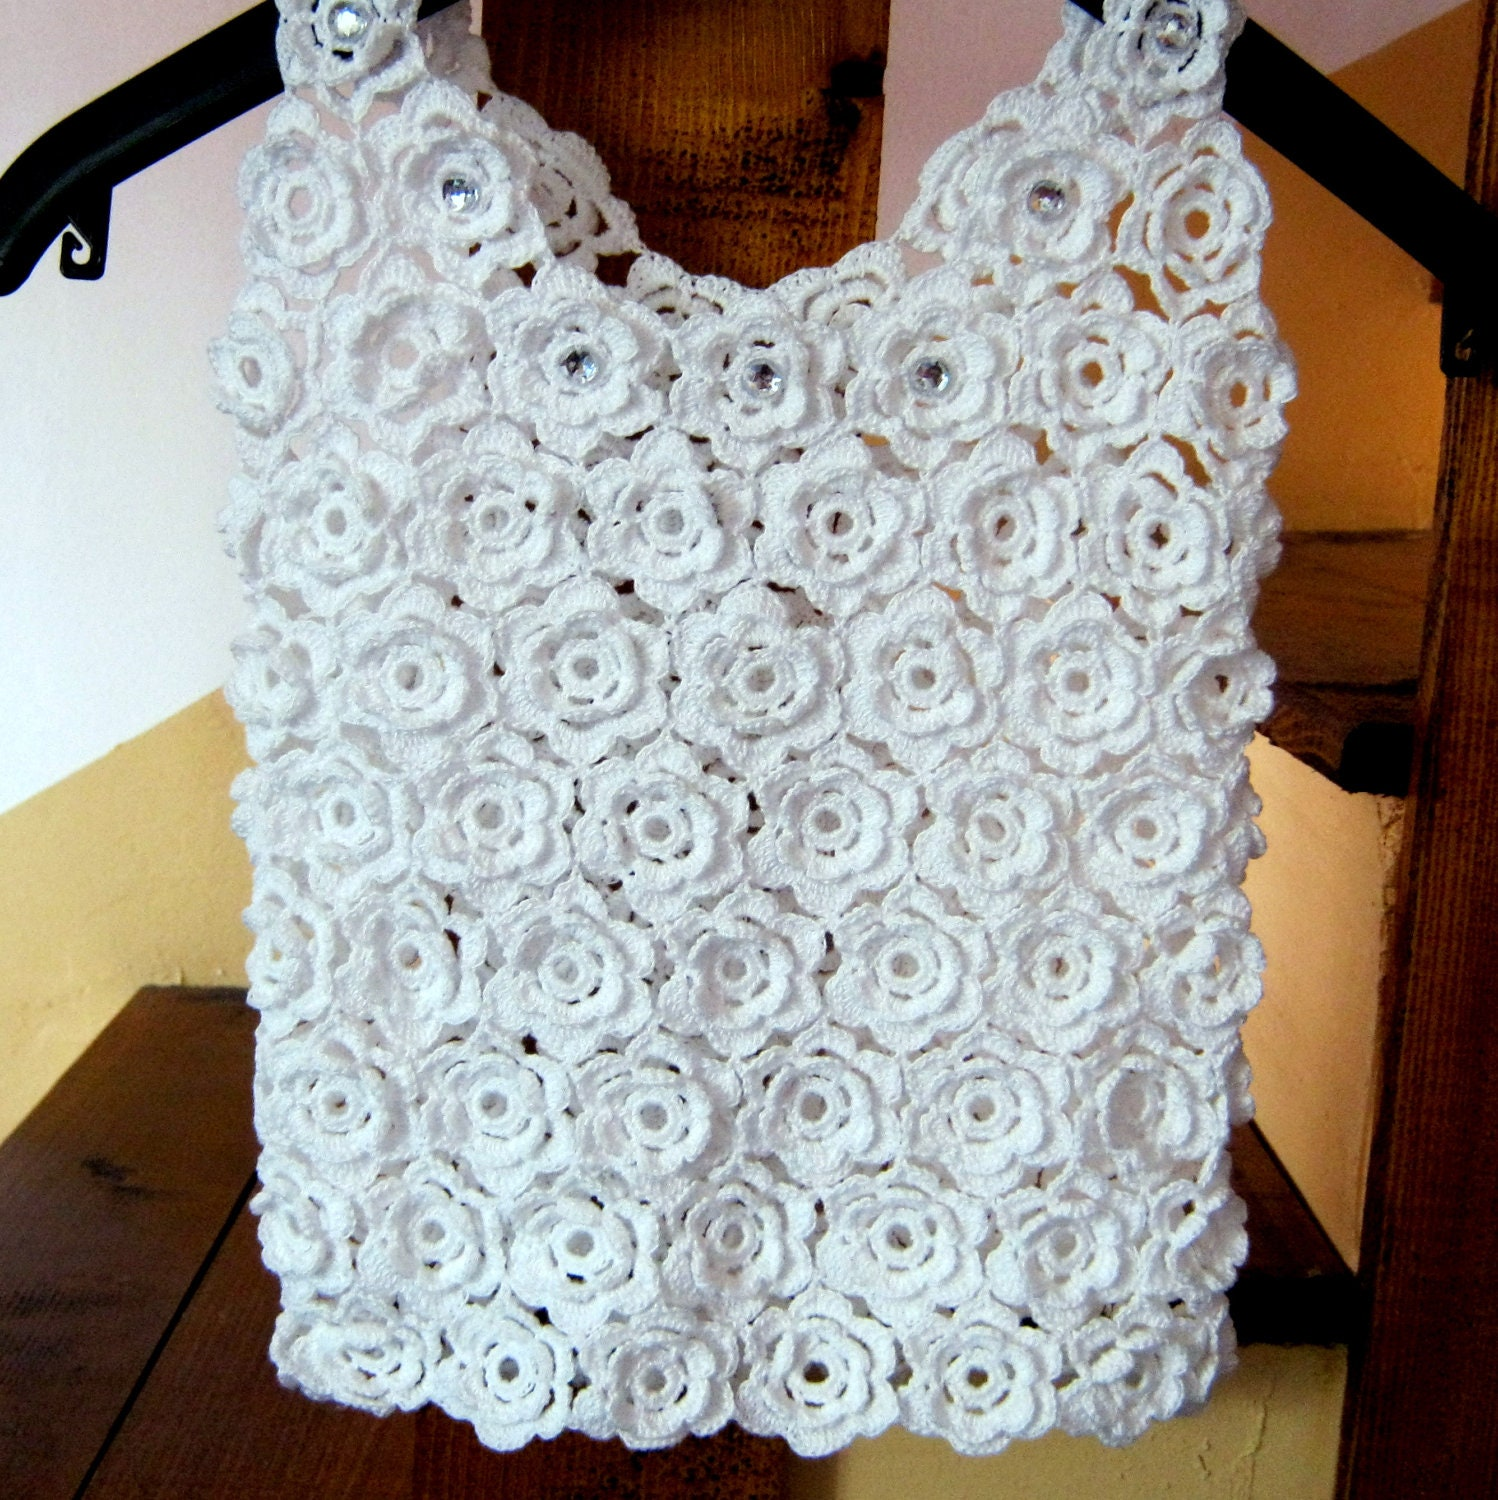 Irish lace white roses lace crochet top wedding dress for Crochet lace wedding dress pattern